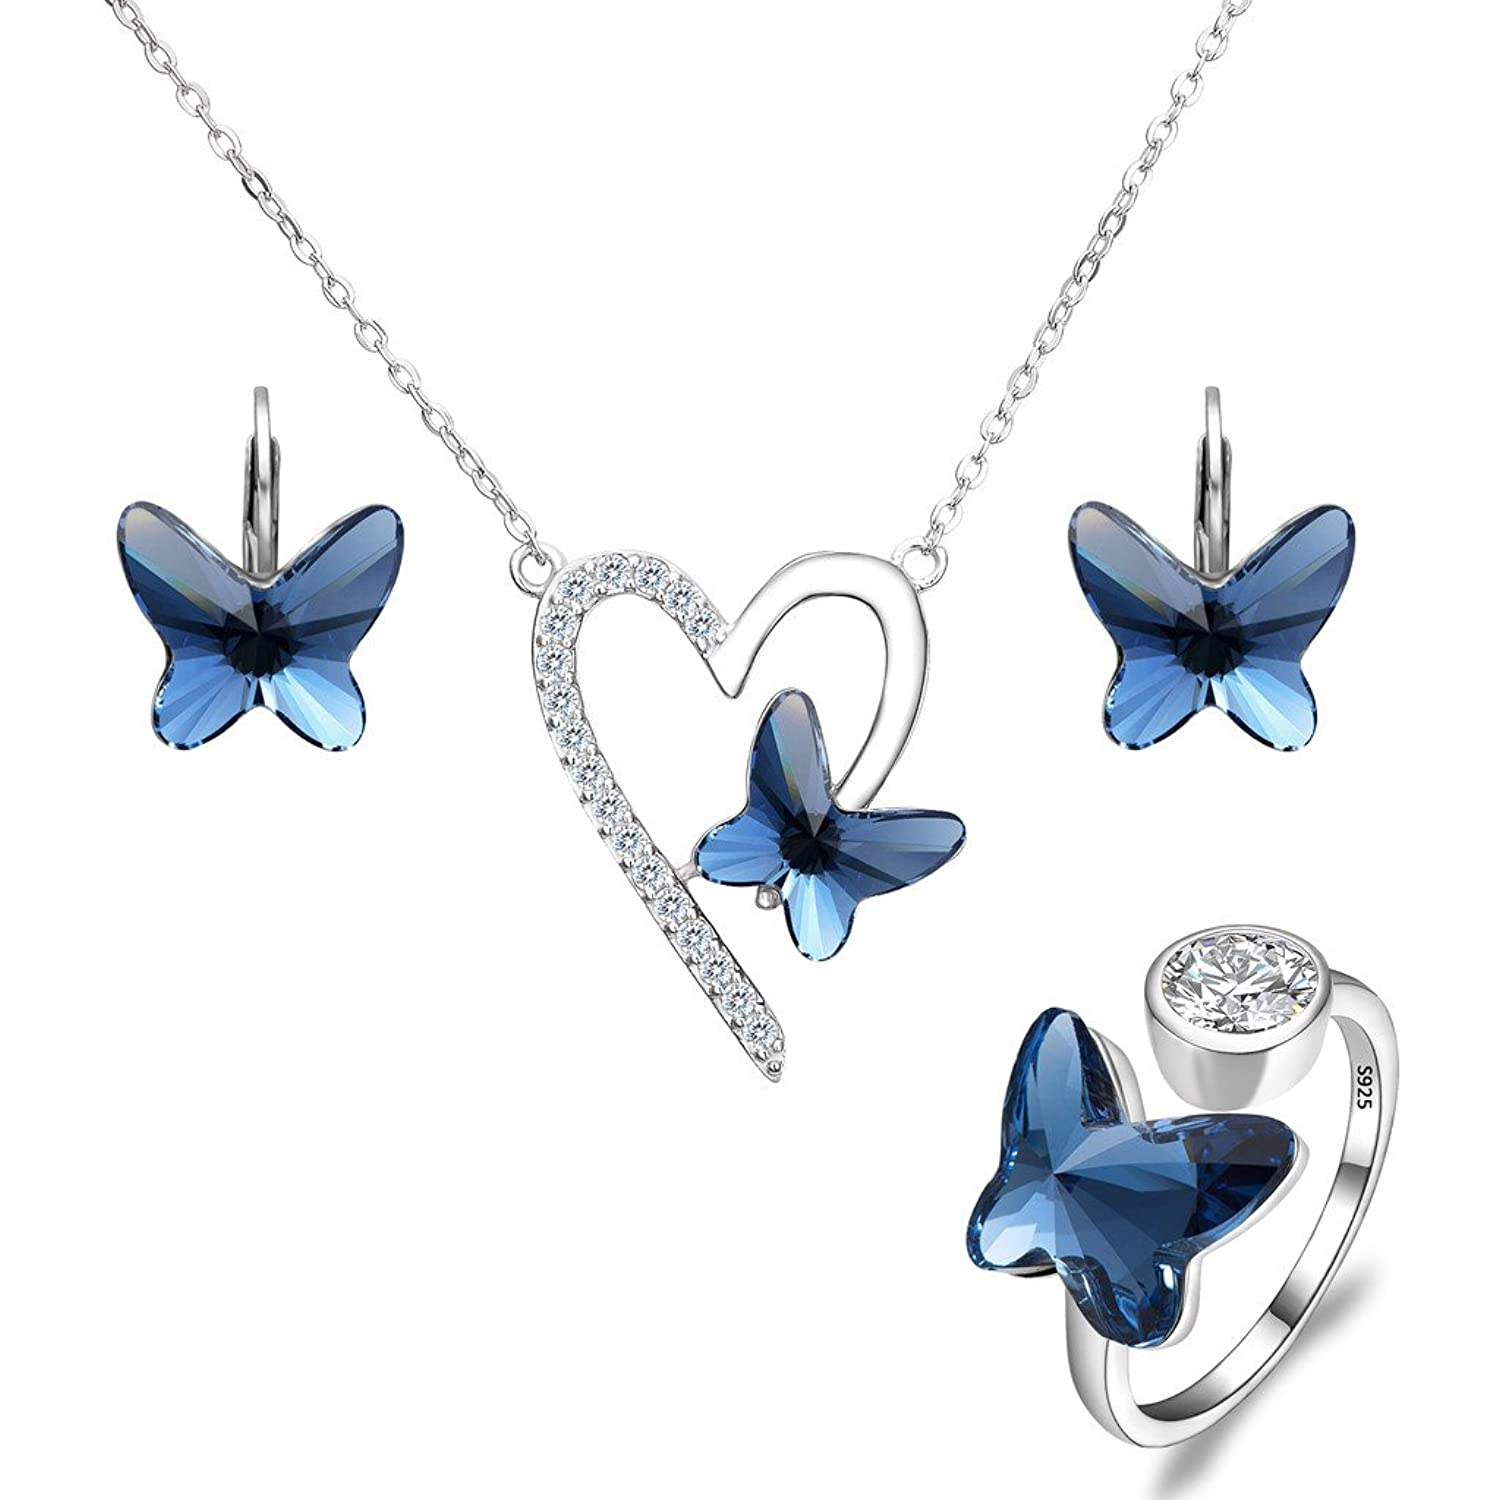 EleQueen 925 Sterling Silver Love Heart Butterfly Adorned with Swarovski Crystals Pendant Necklace Stud Earrings Ring Set